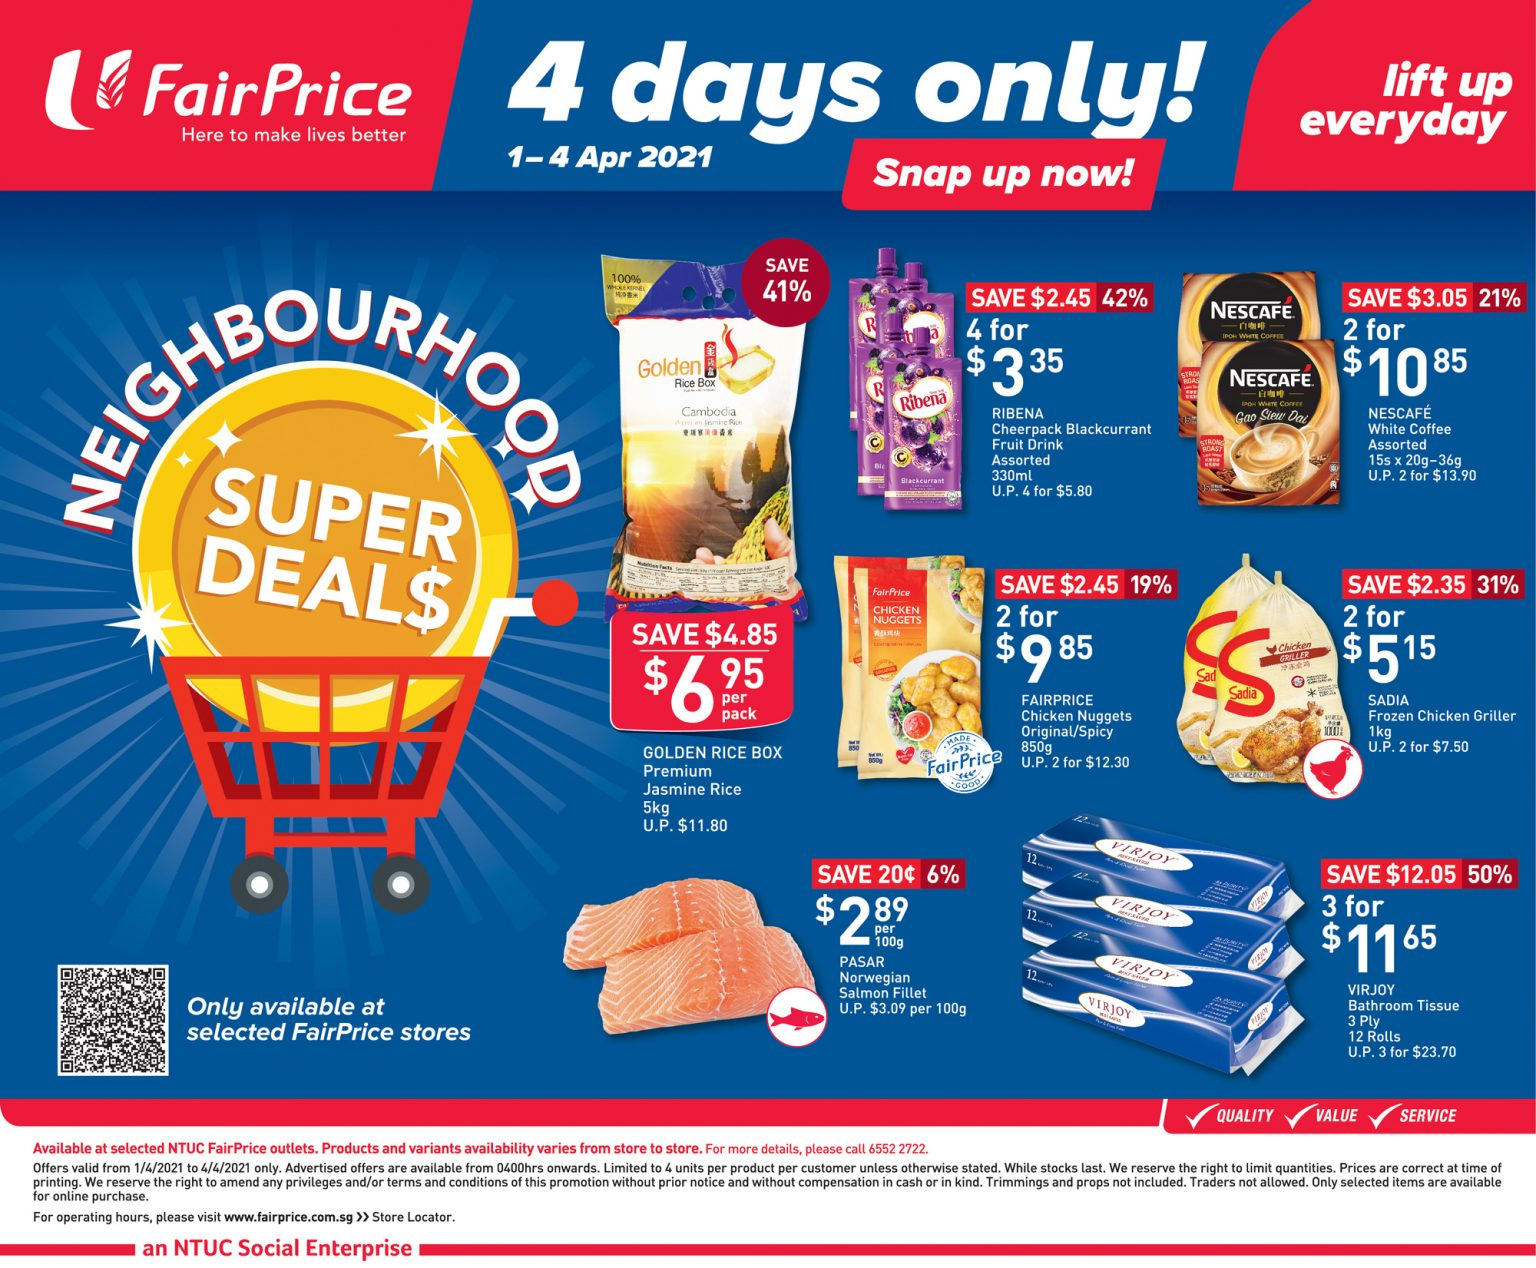 4 days only deals from 1 to 4 April 2021 (1)